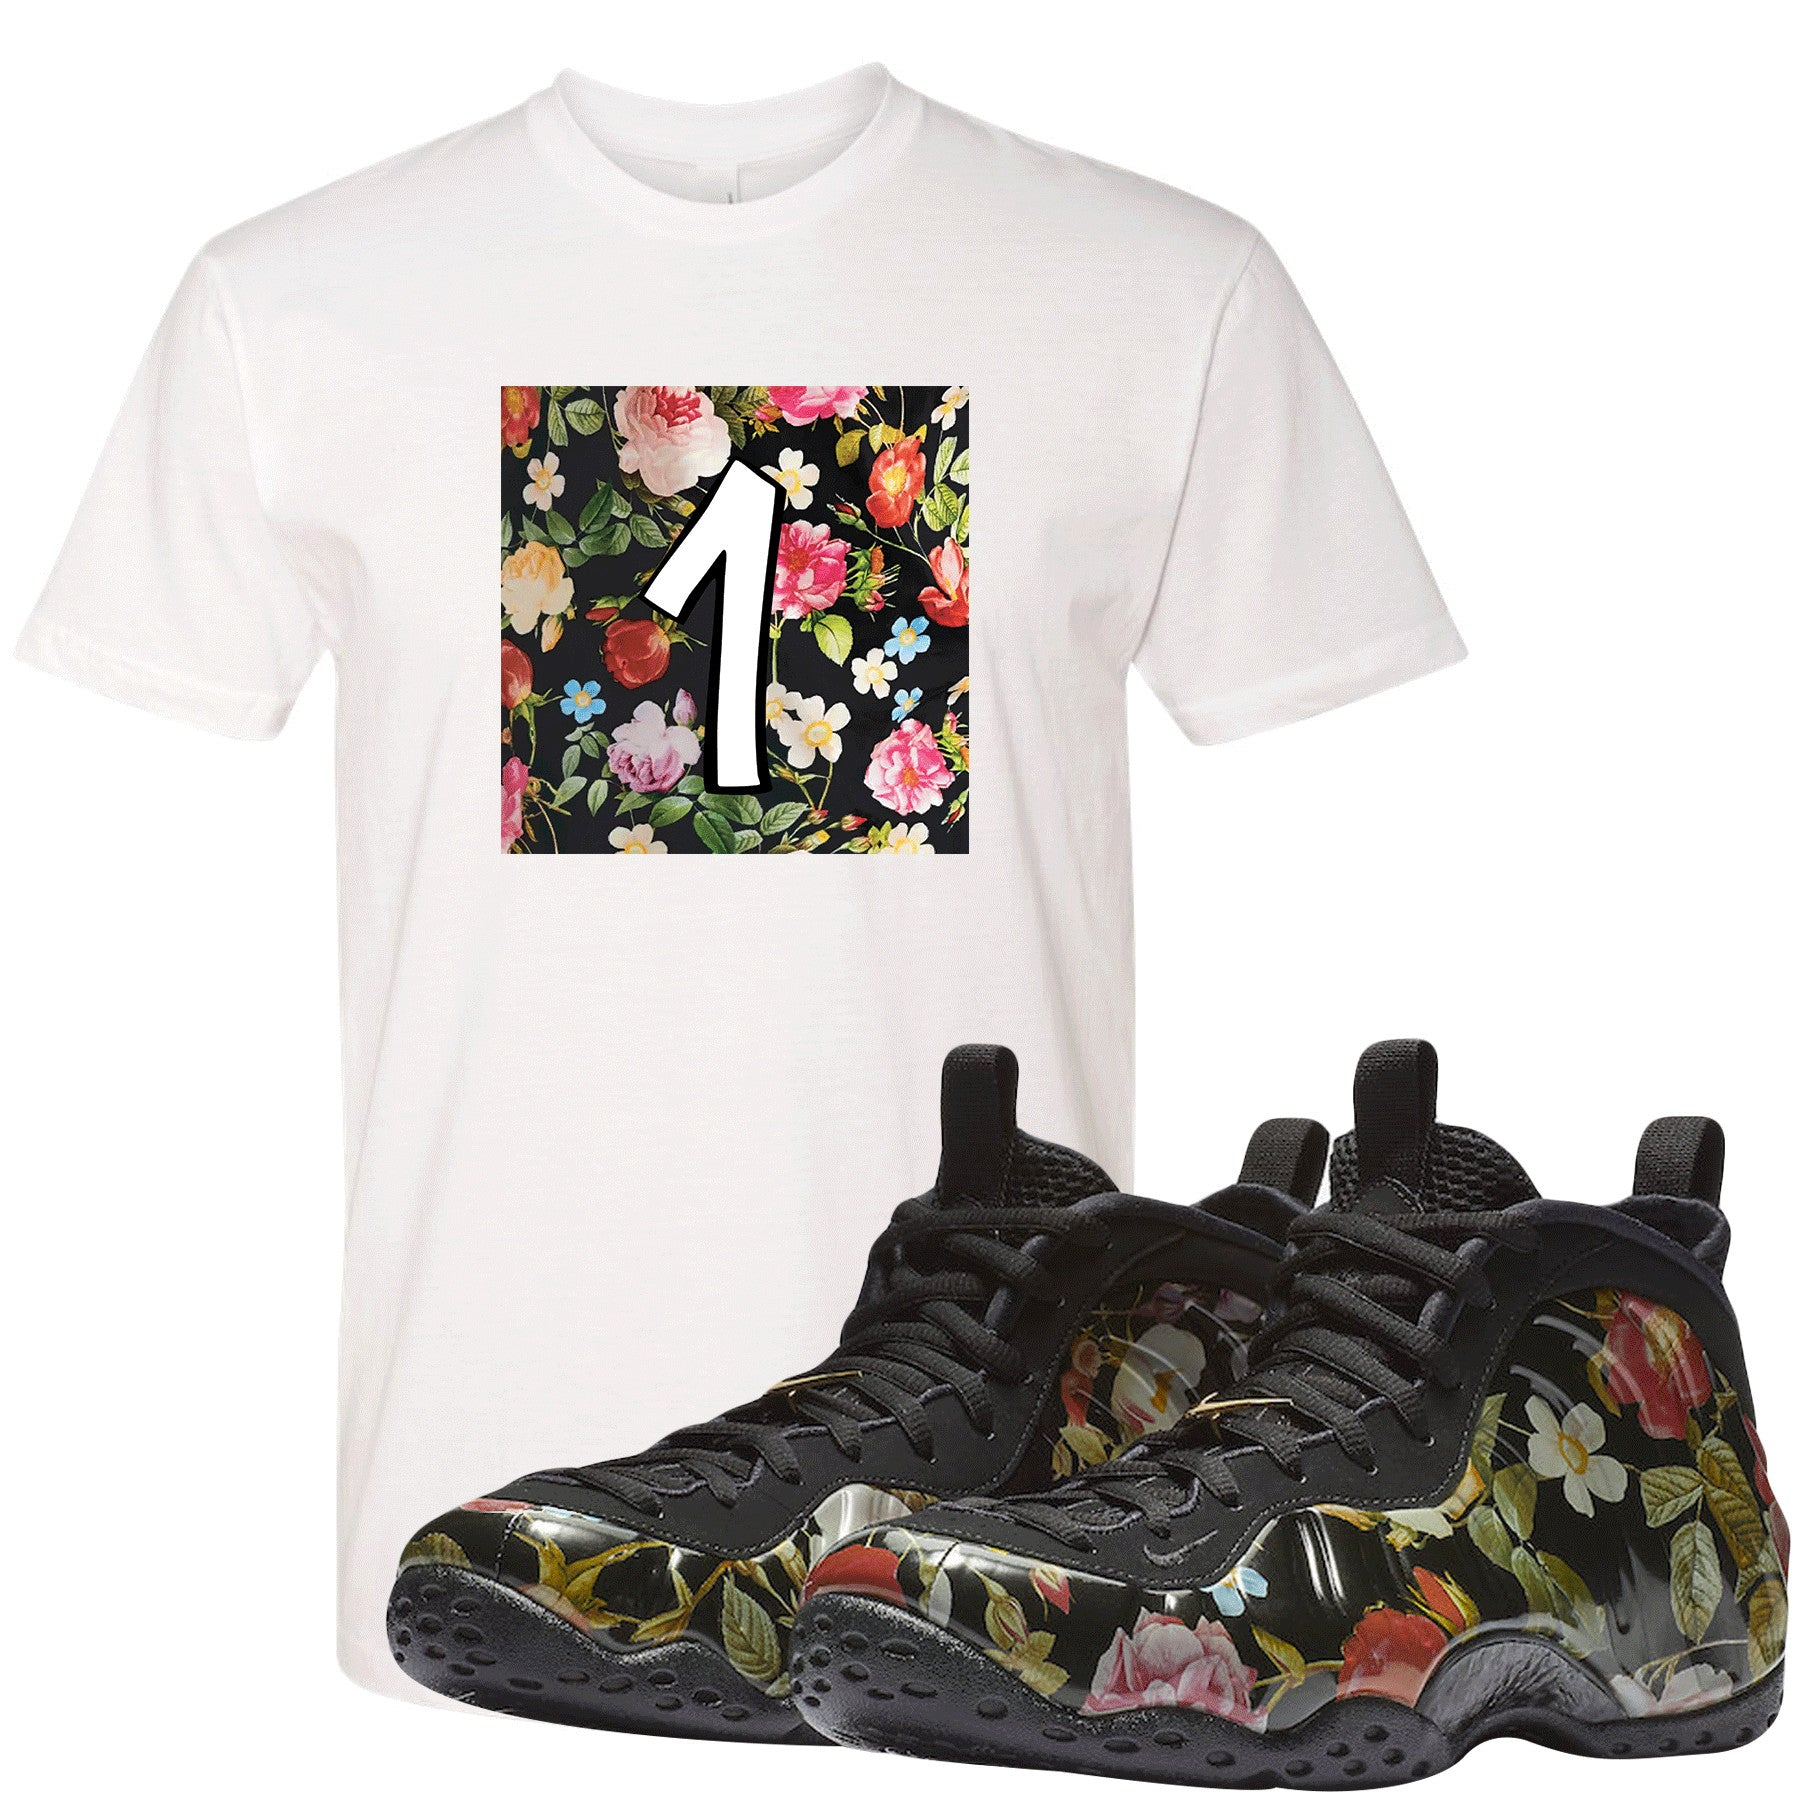 165c1c25032 Wear this sneaker matching t-shirt to match your Air Foamposite One Floral  sneakers.